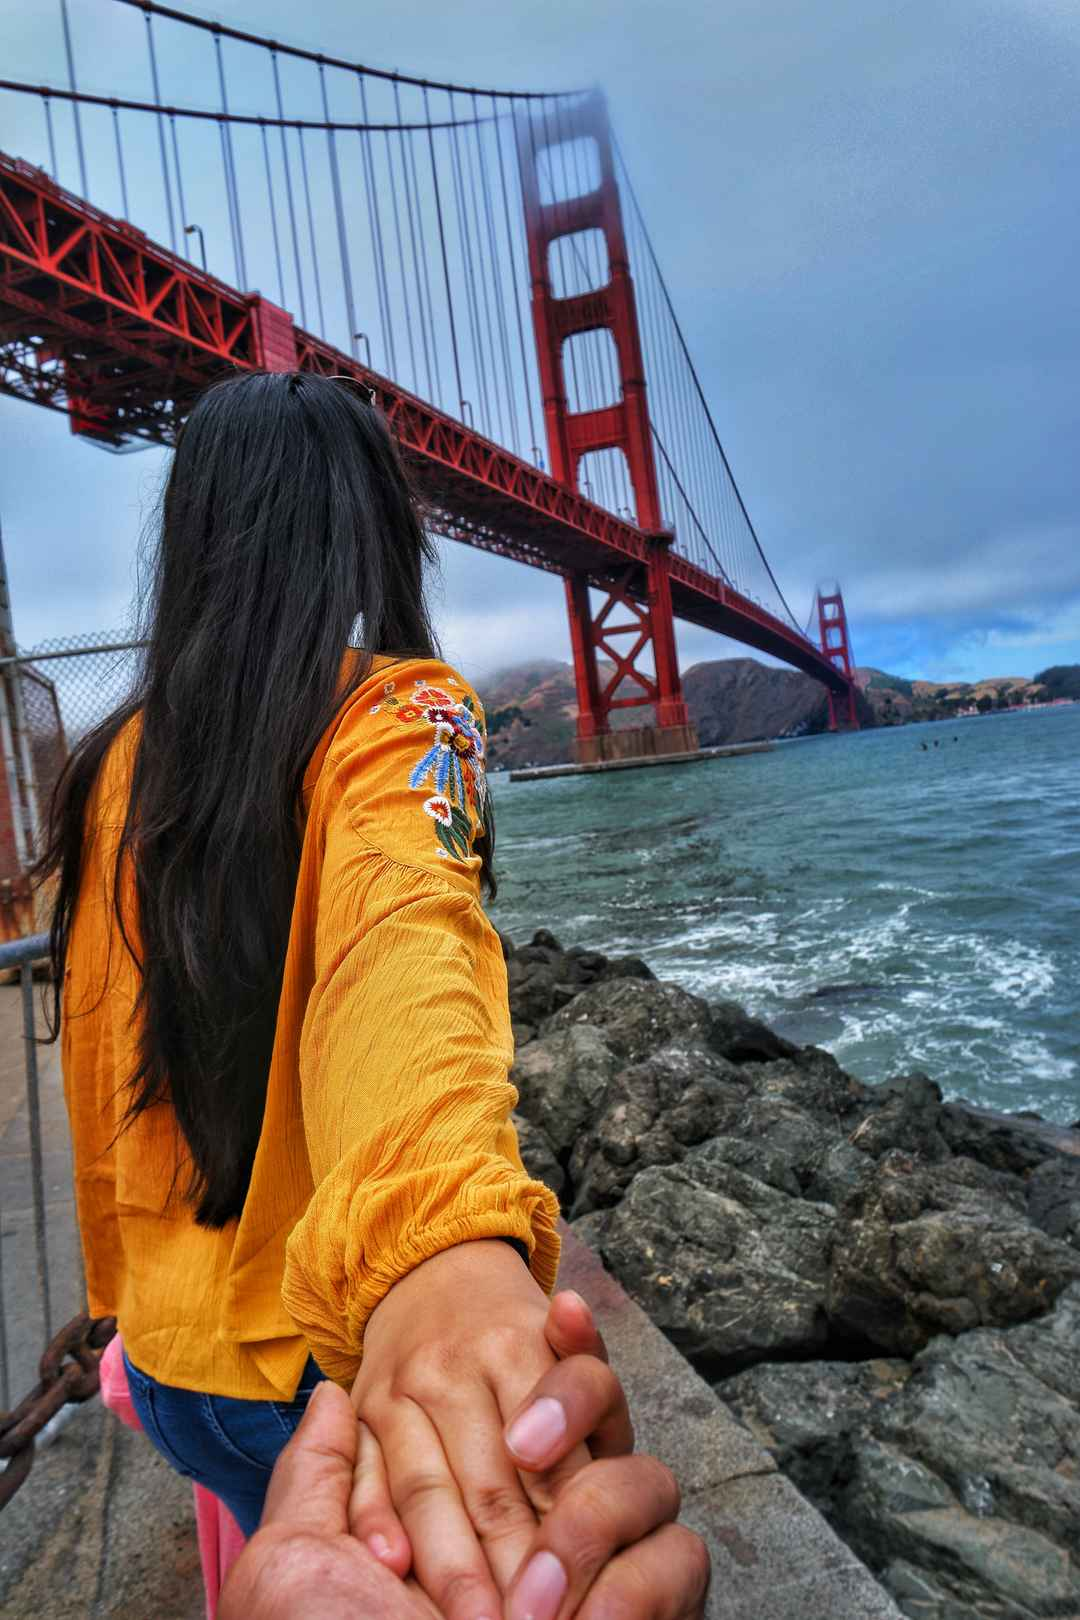 Follow me to the Golden Gate Bridge of San Francisco.